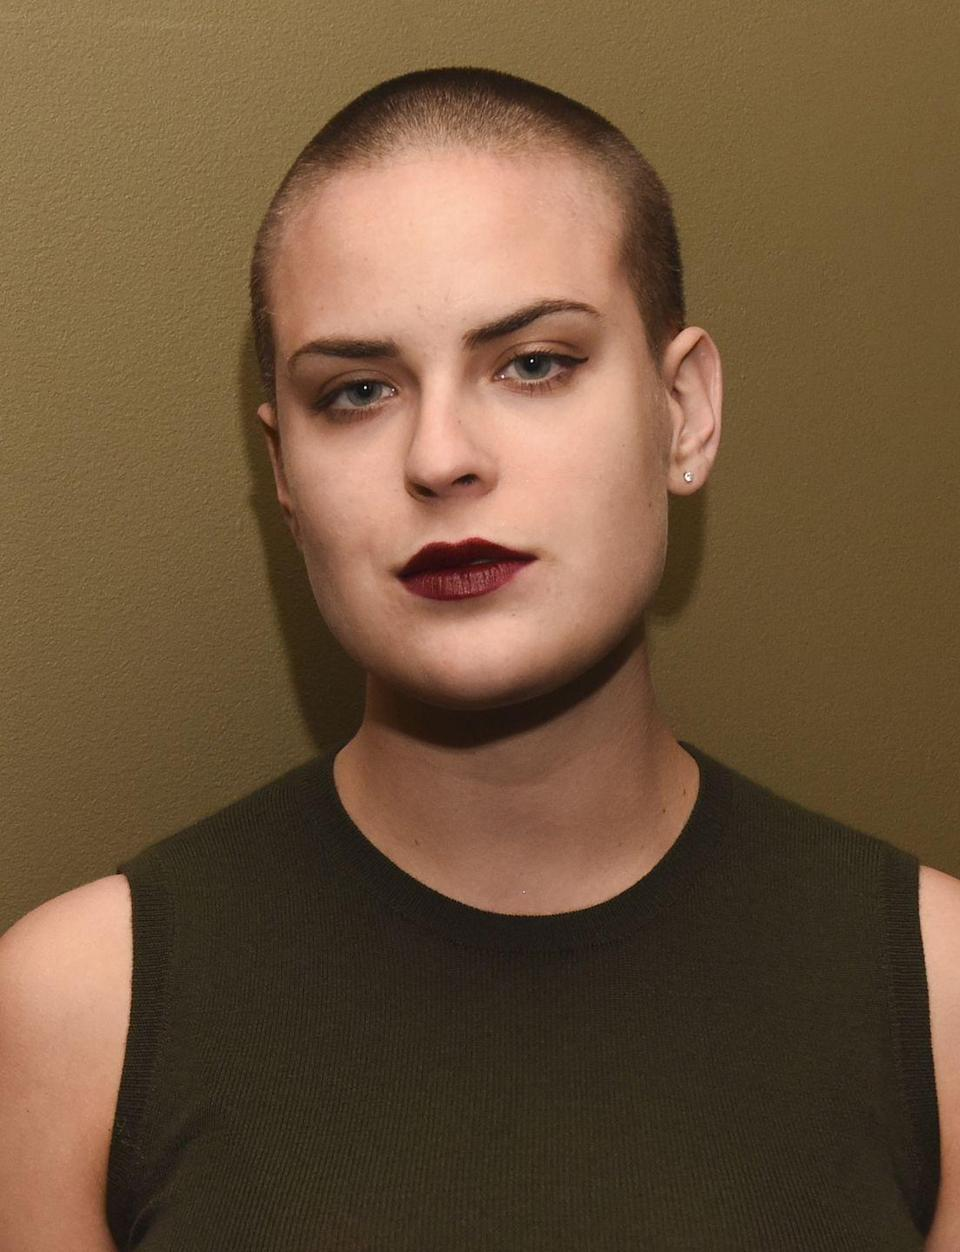 <p>When the first lockdown arrived, Tallulah Willis followed in her mother's footsteps and shaved her own head at home. </p>